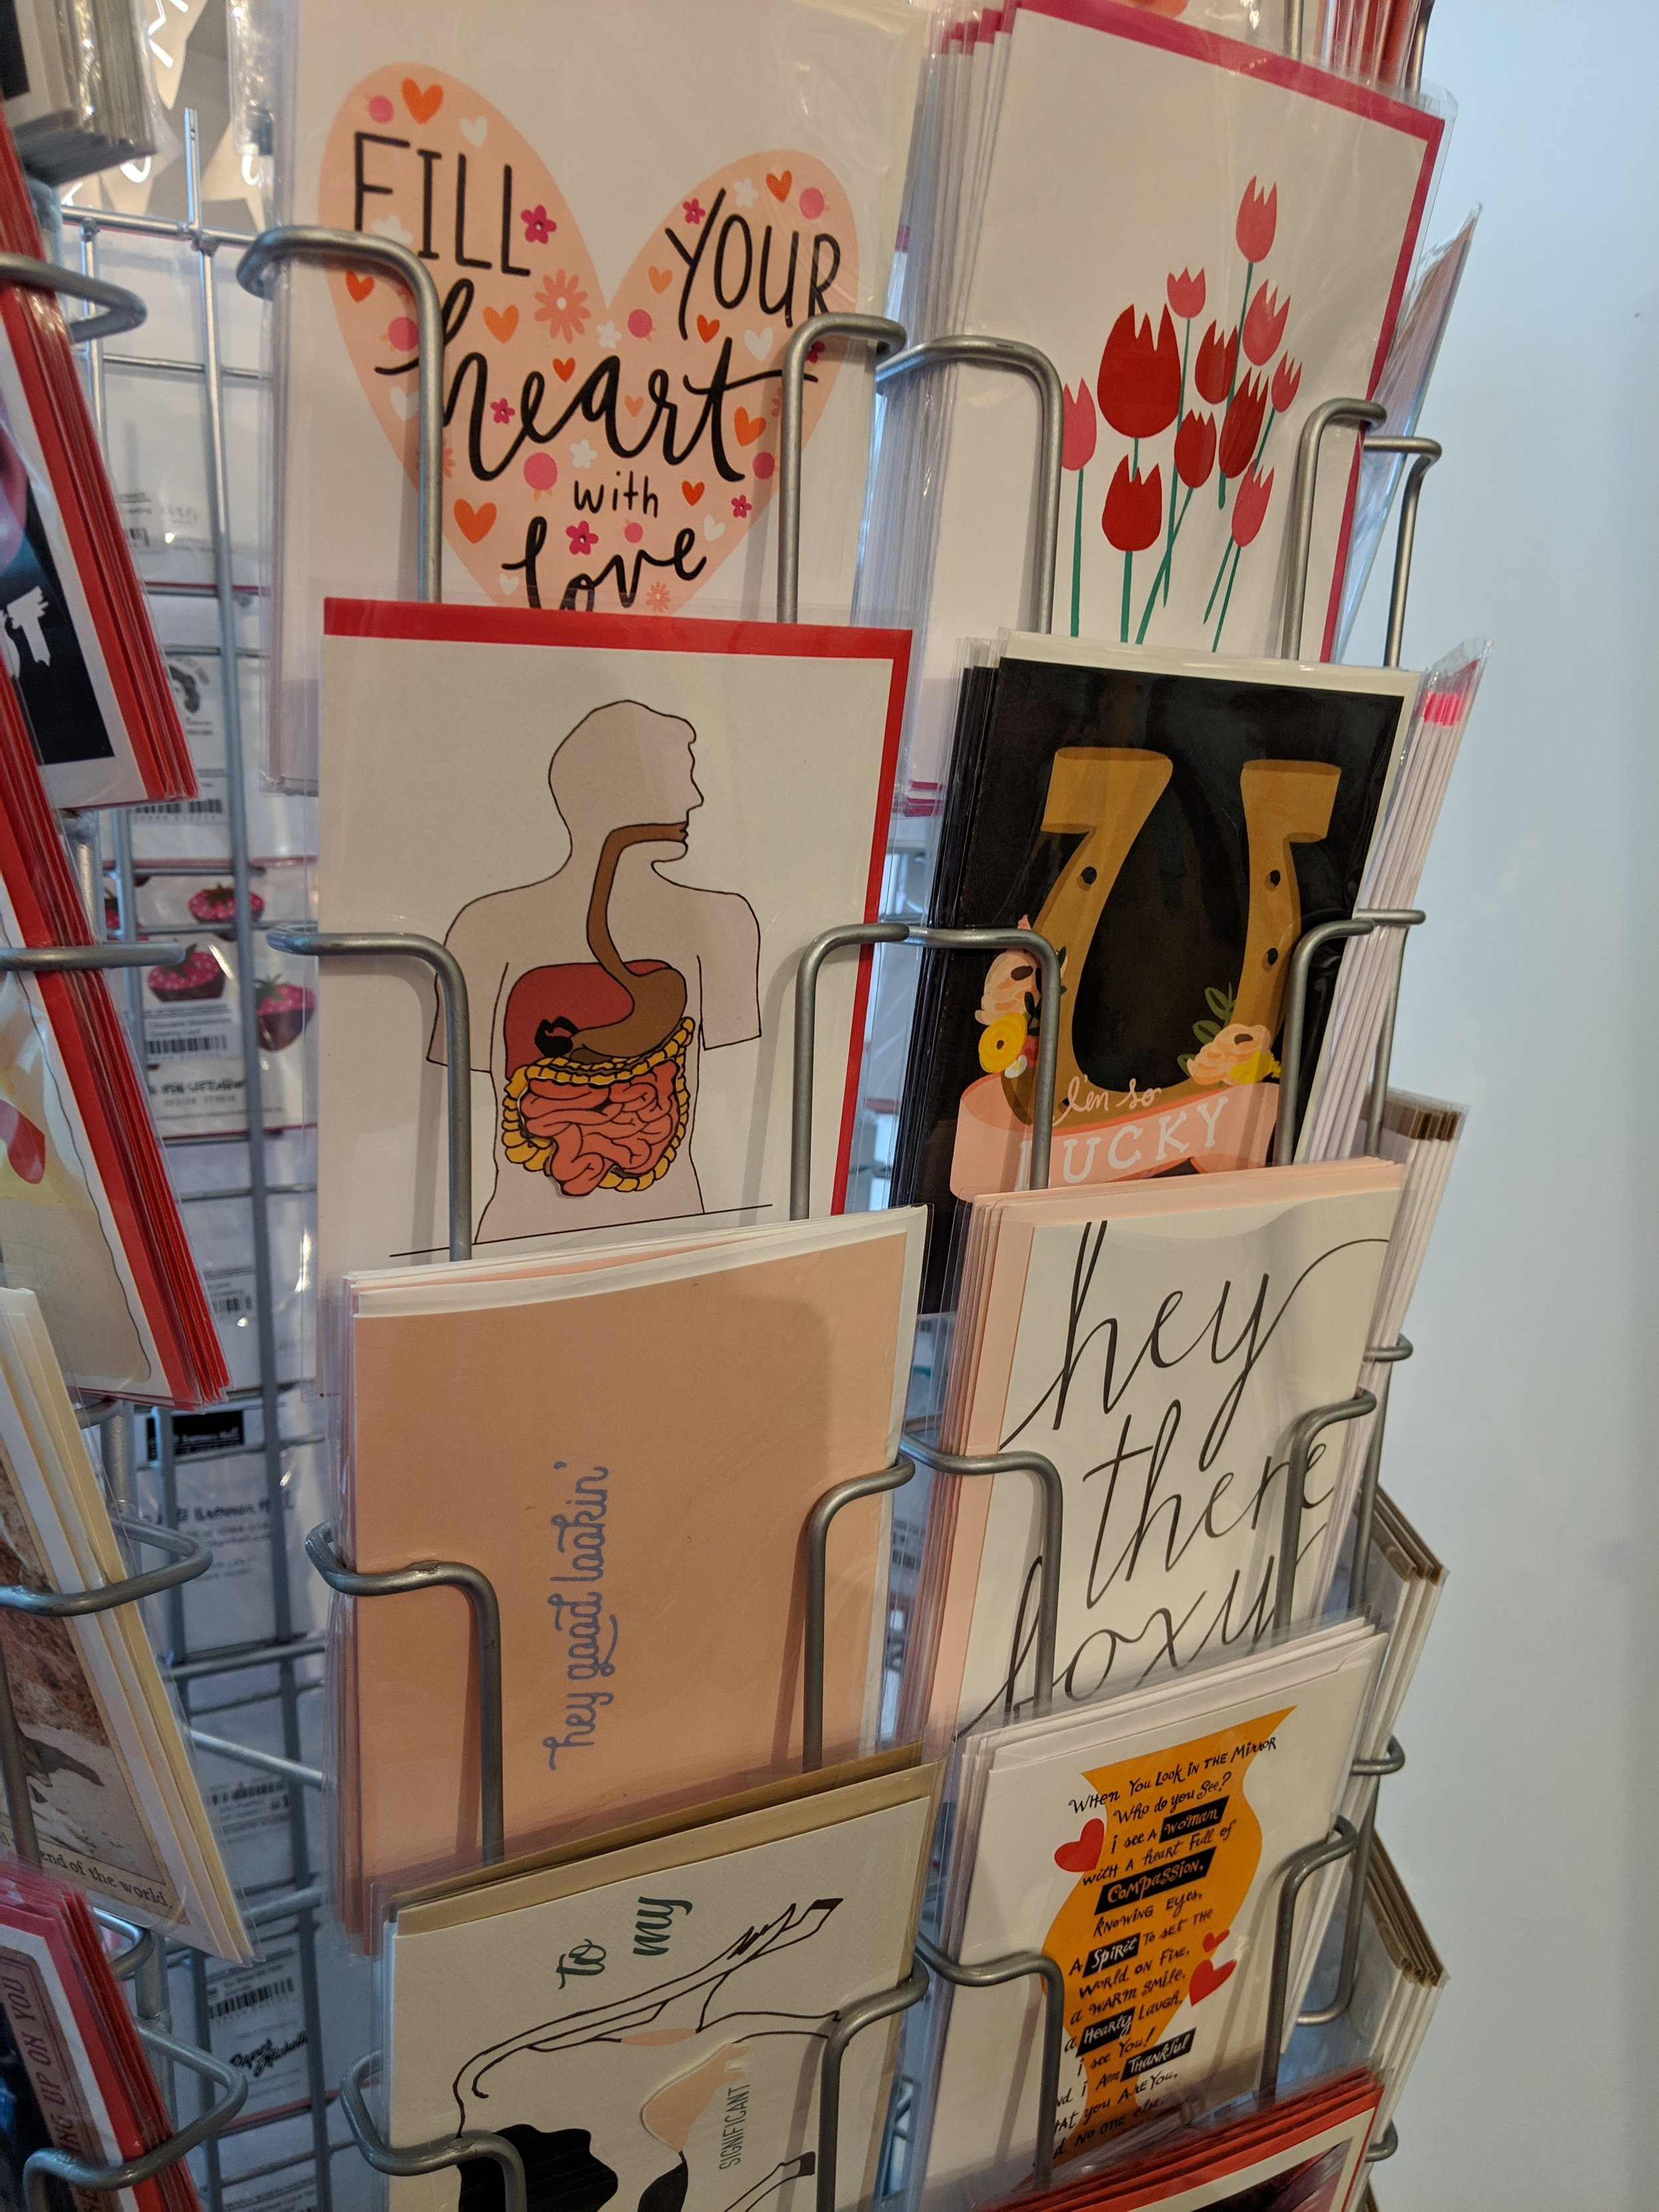 Valentine's Day cards at Homespun: Modern Handmade on Mass Ave in Indianapolis.